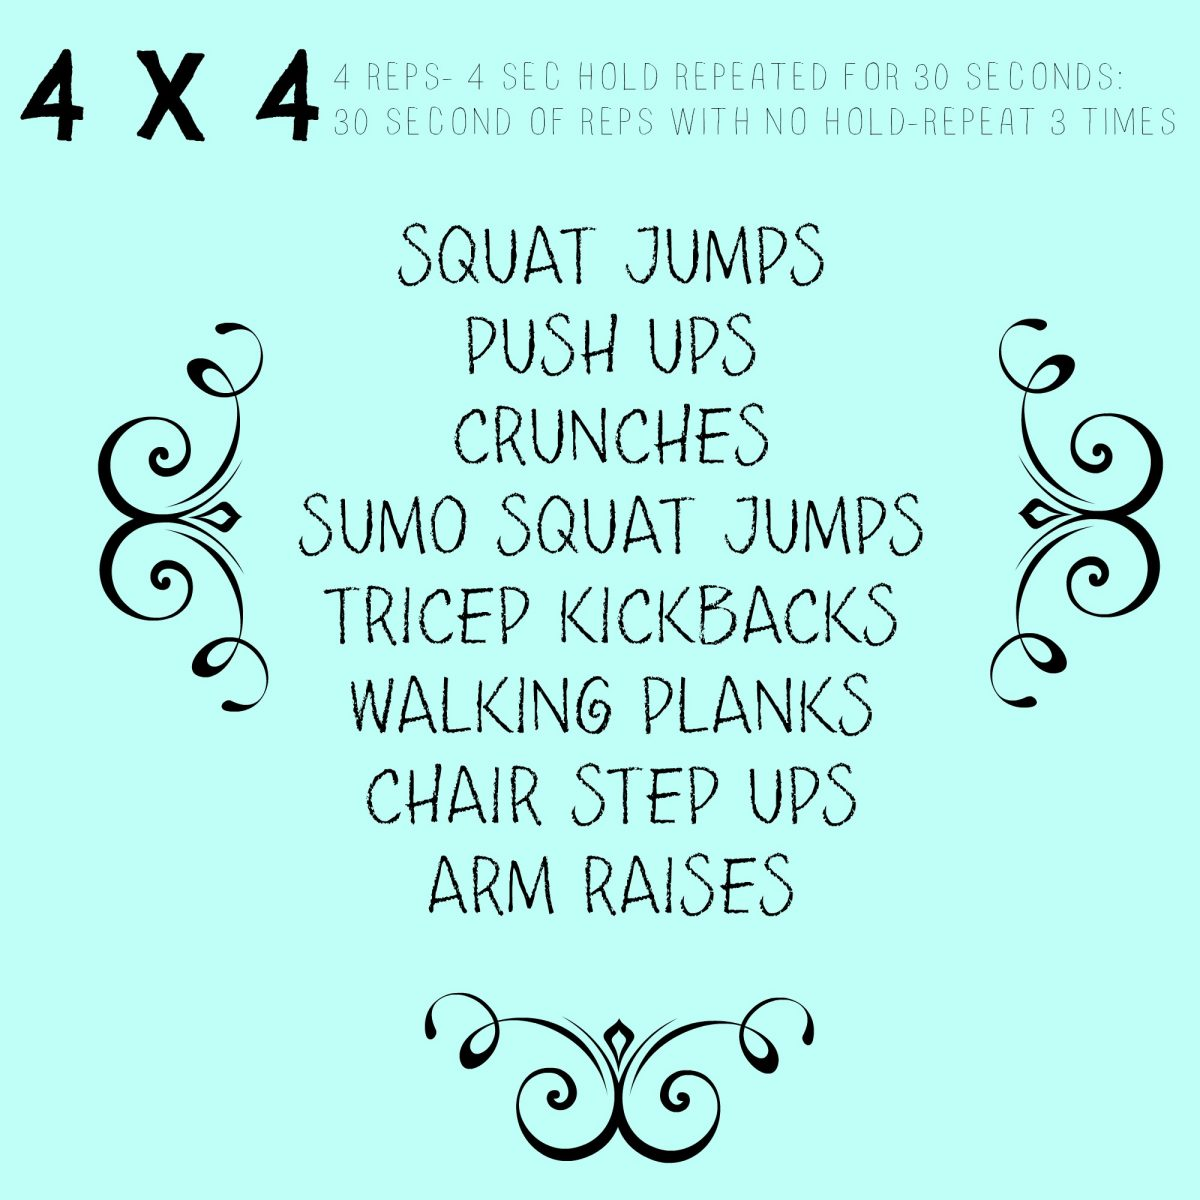 4 x 4 30 Minute at Home Workout